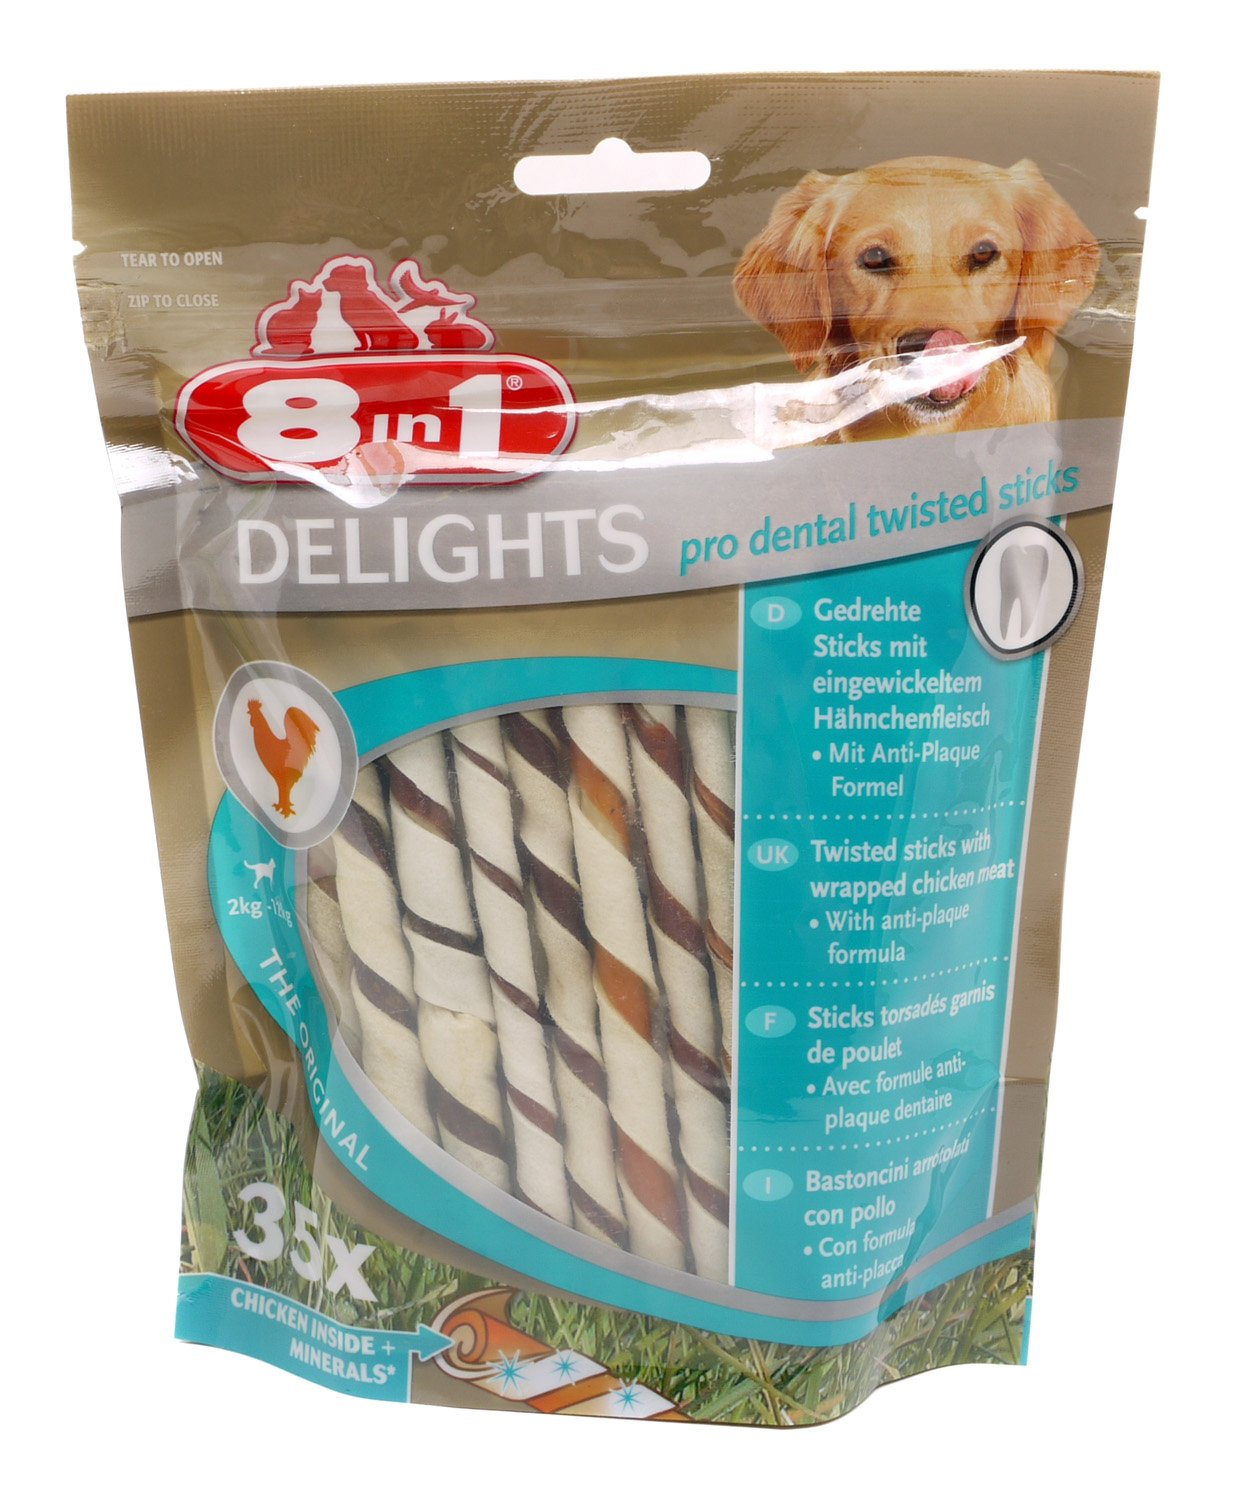 8in1 Dog Delights Dental Twist Sticks 190g (Pack of 5)